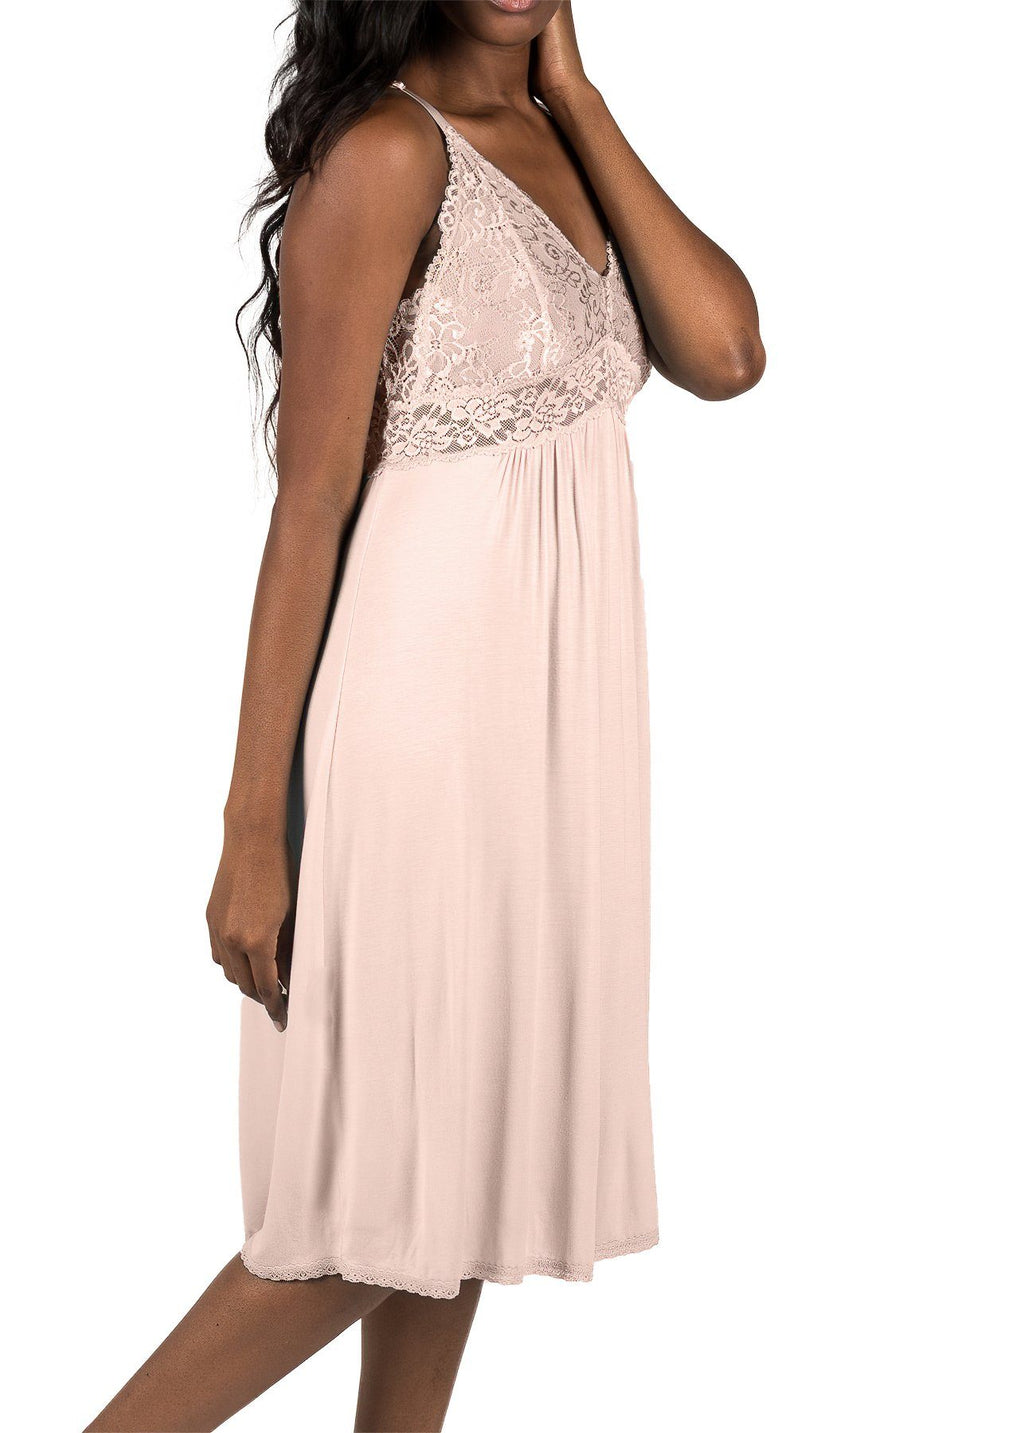 Bliss Nightgown - Blush Pink Mystique Intimates